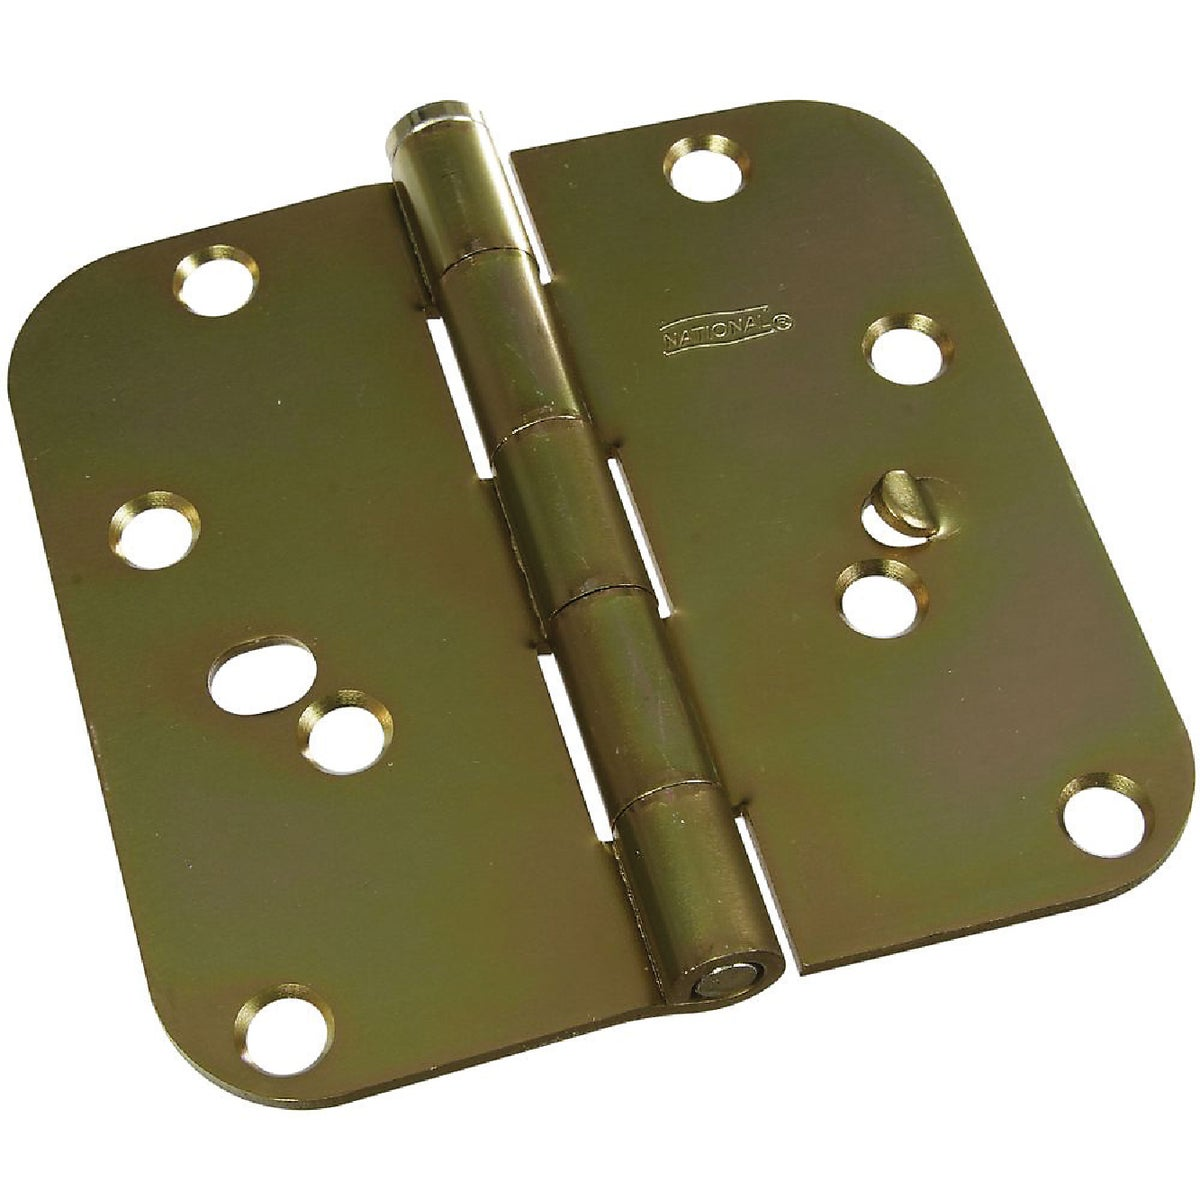 "4"" SECURITY STUD HINGE - N240275 by National Mfg Co"